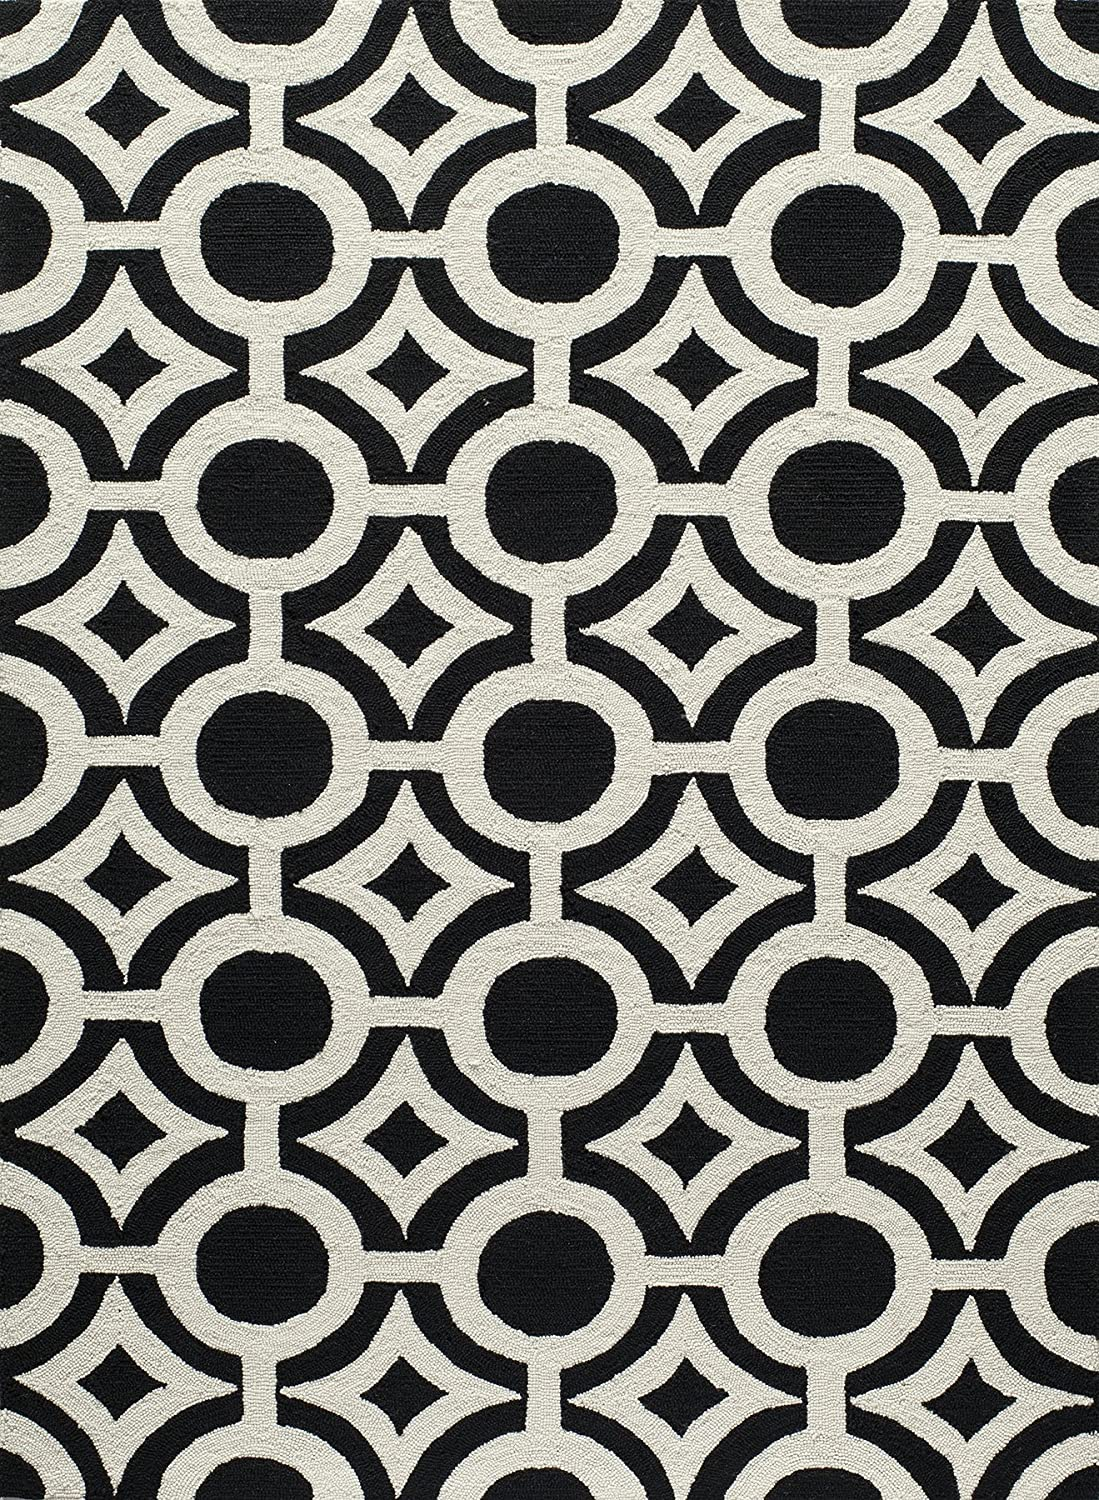 Momeni Rugs Geo Collection, Hand Hooked Contemporary Area Rug, 2' x 3', Black